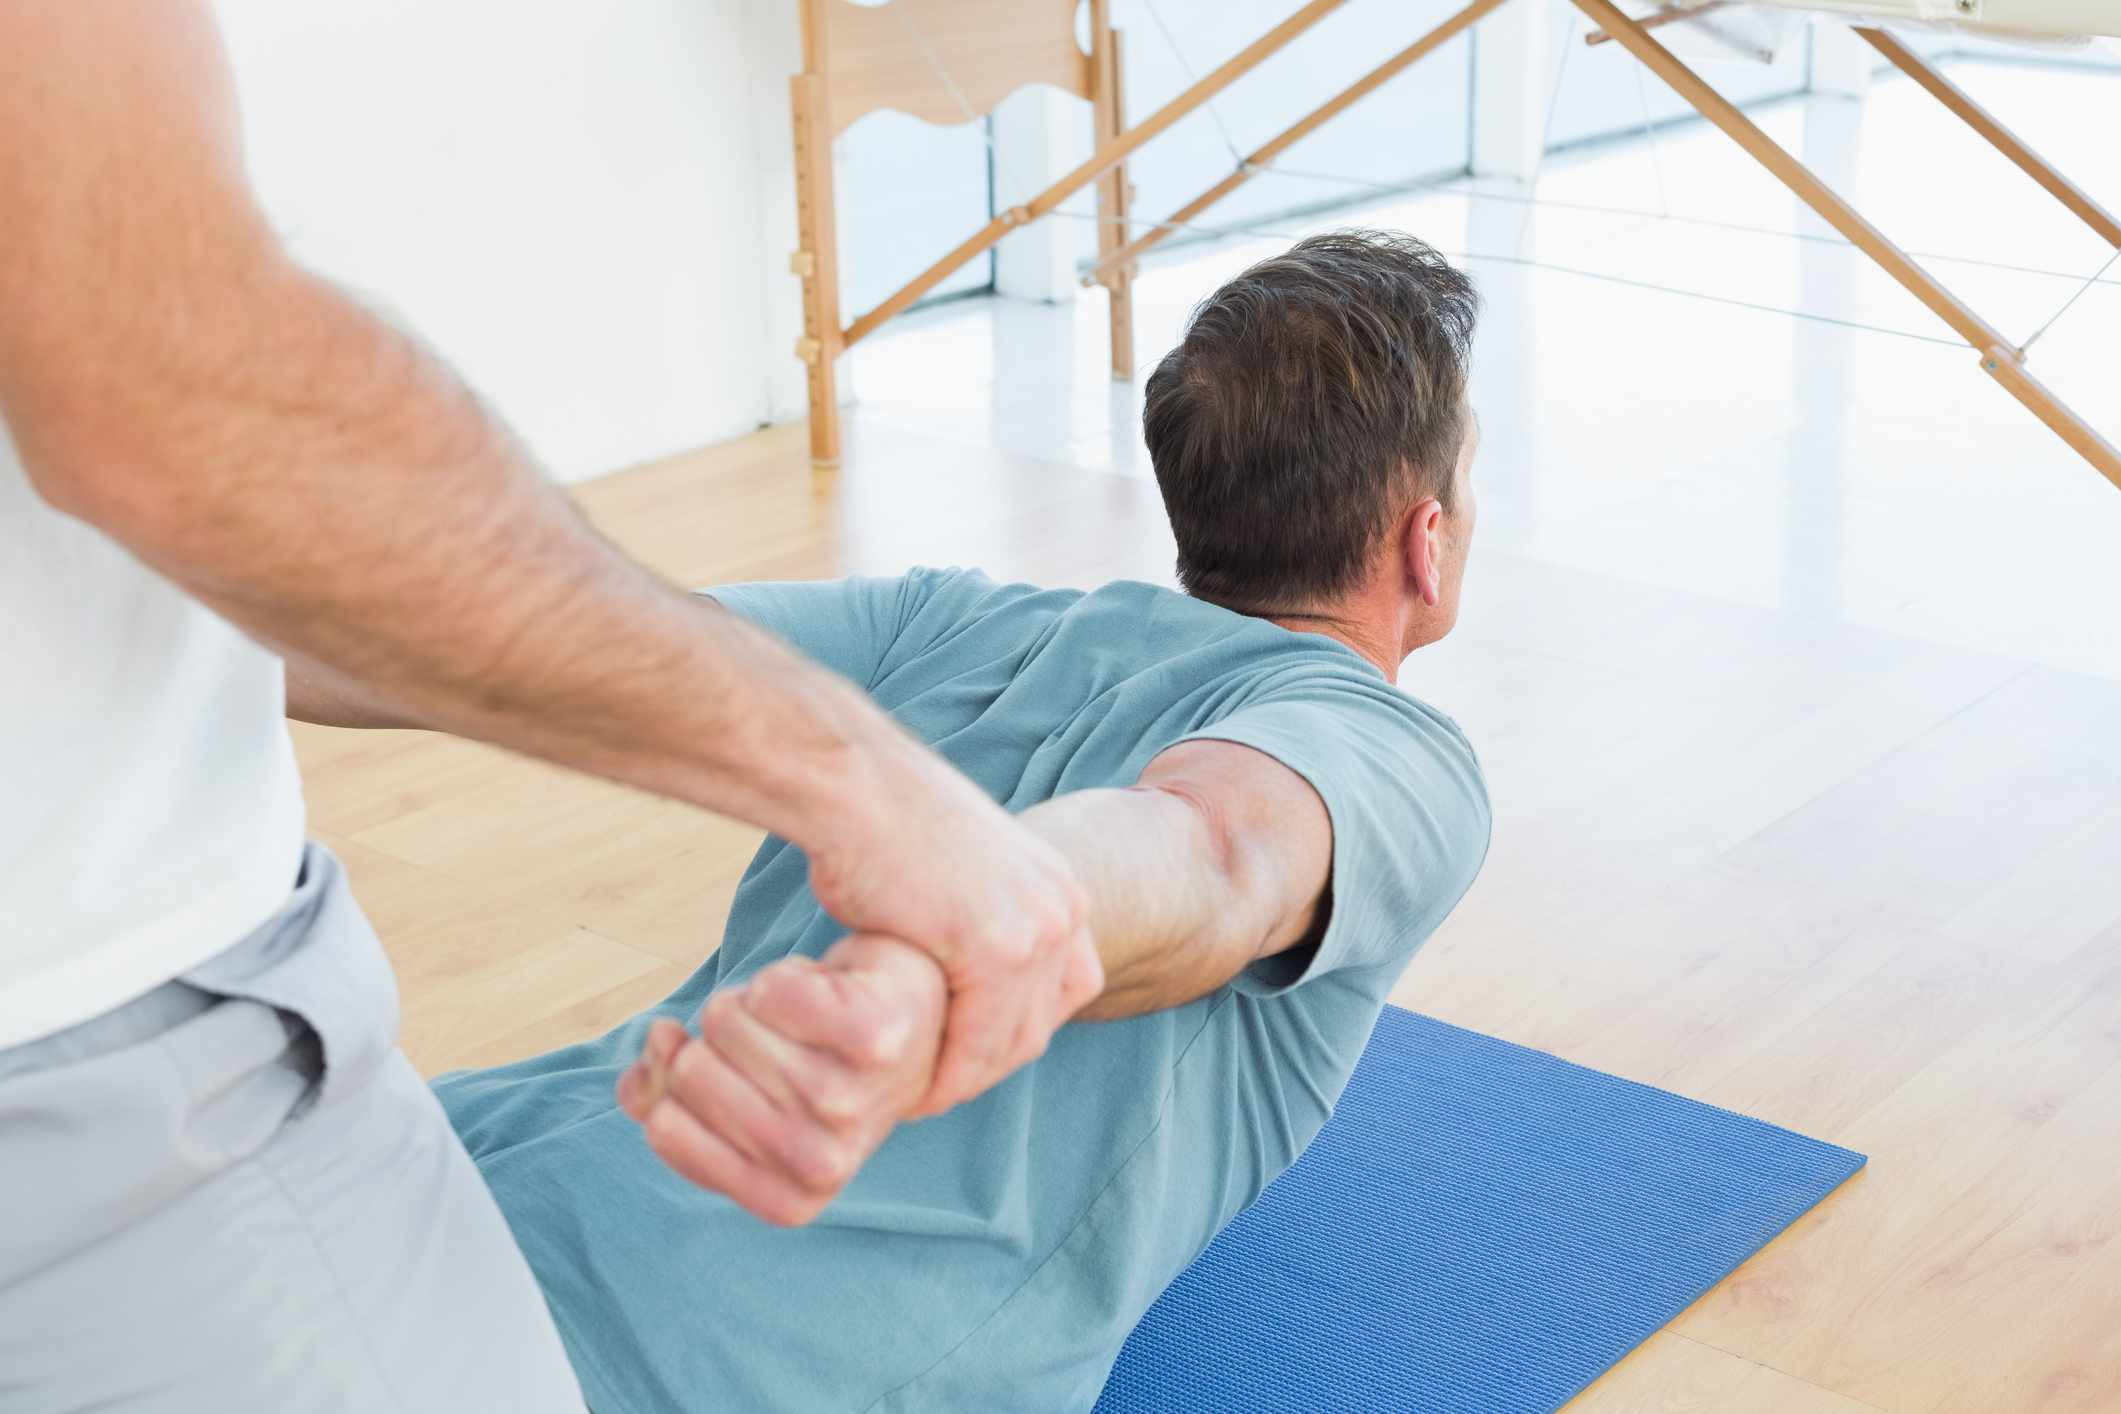 A therapist assisting a man with stretching exercises